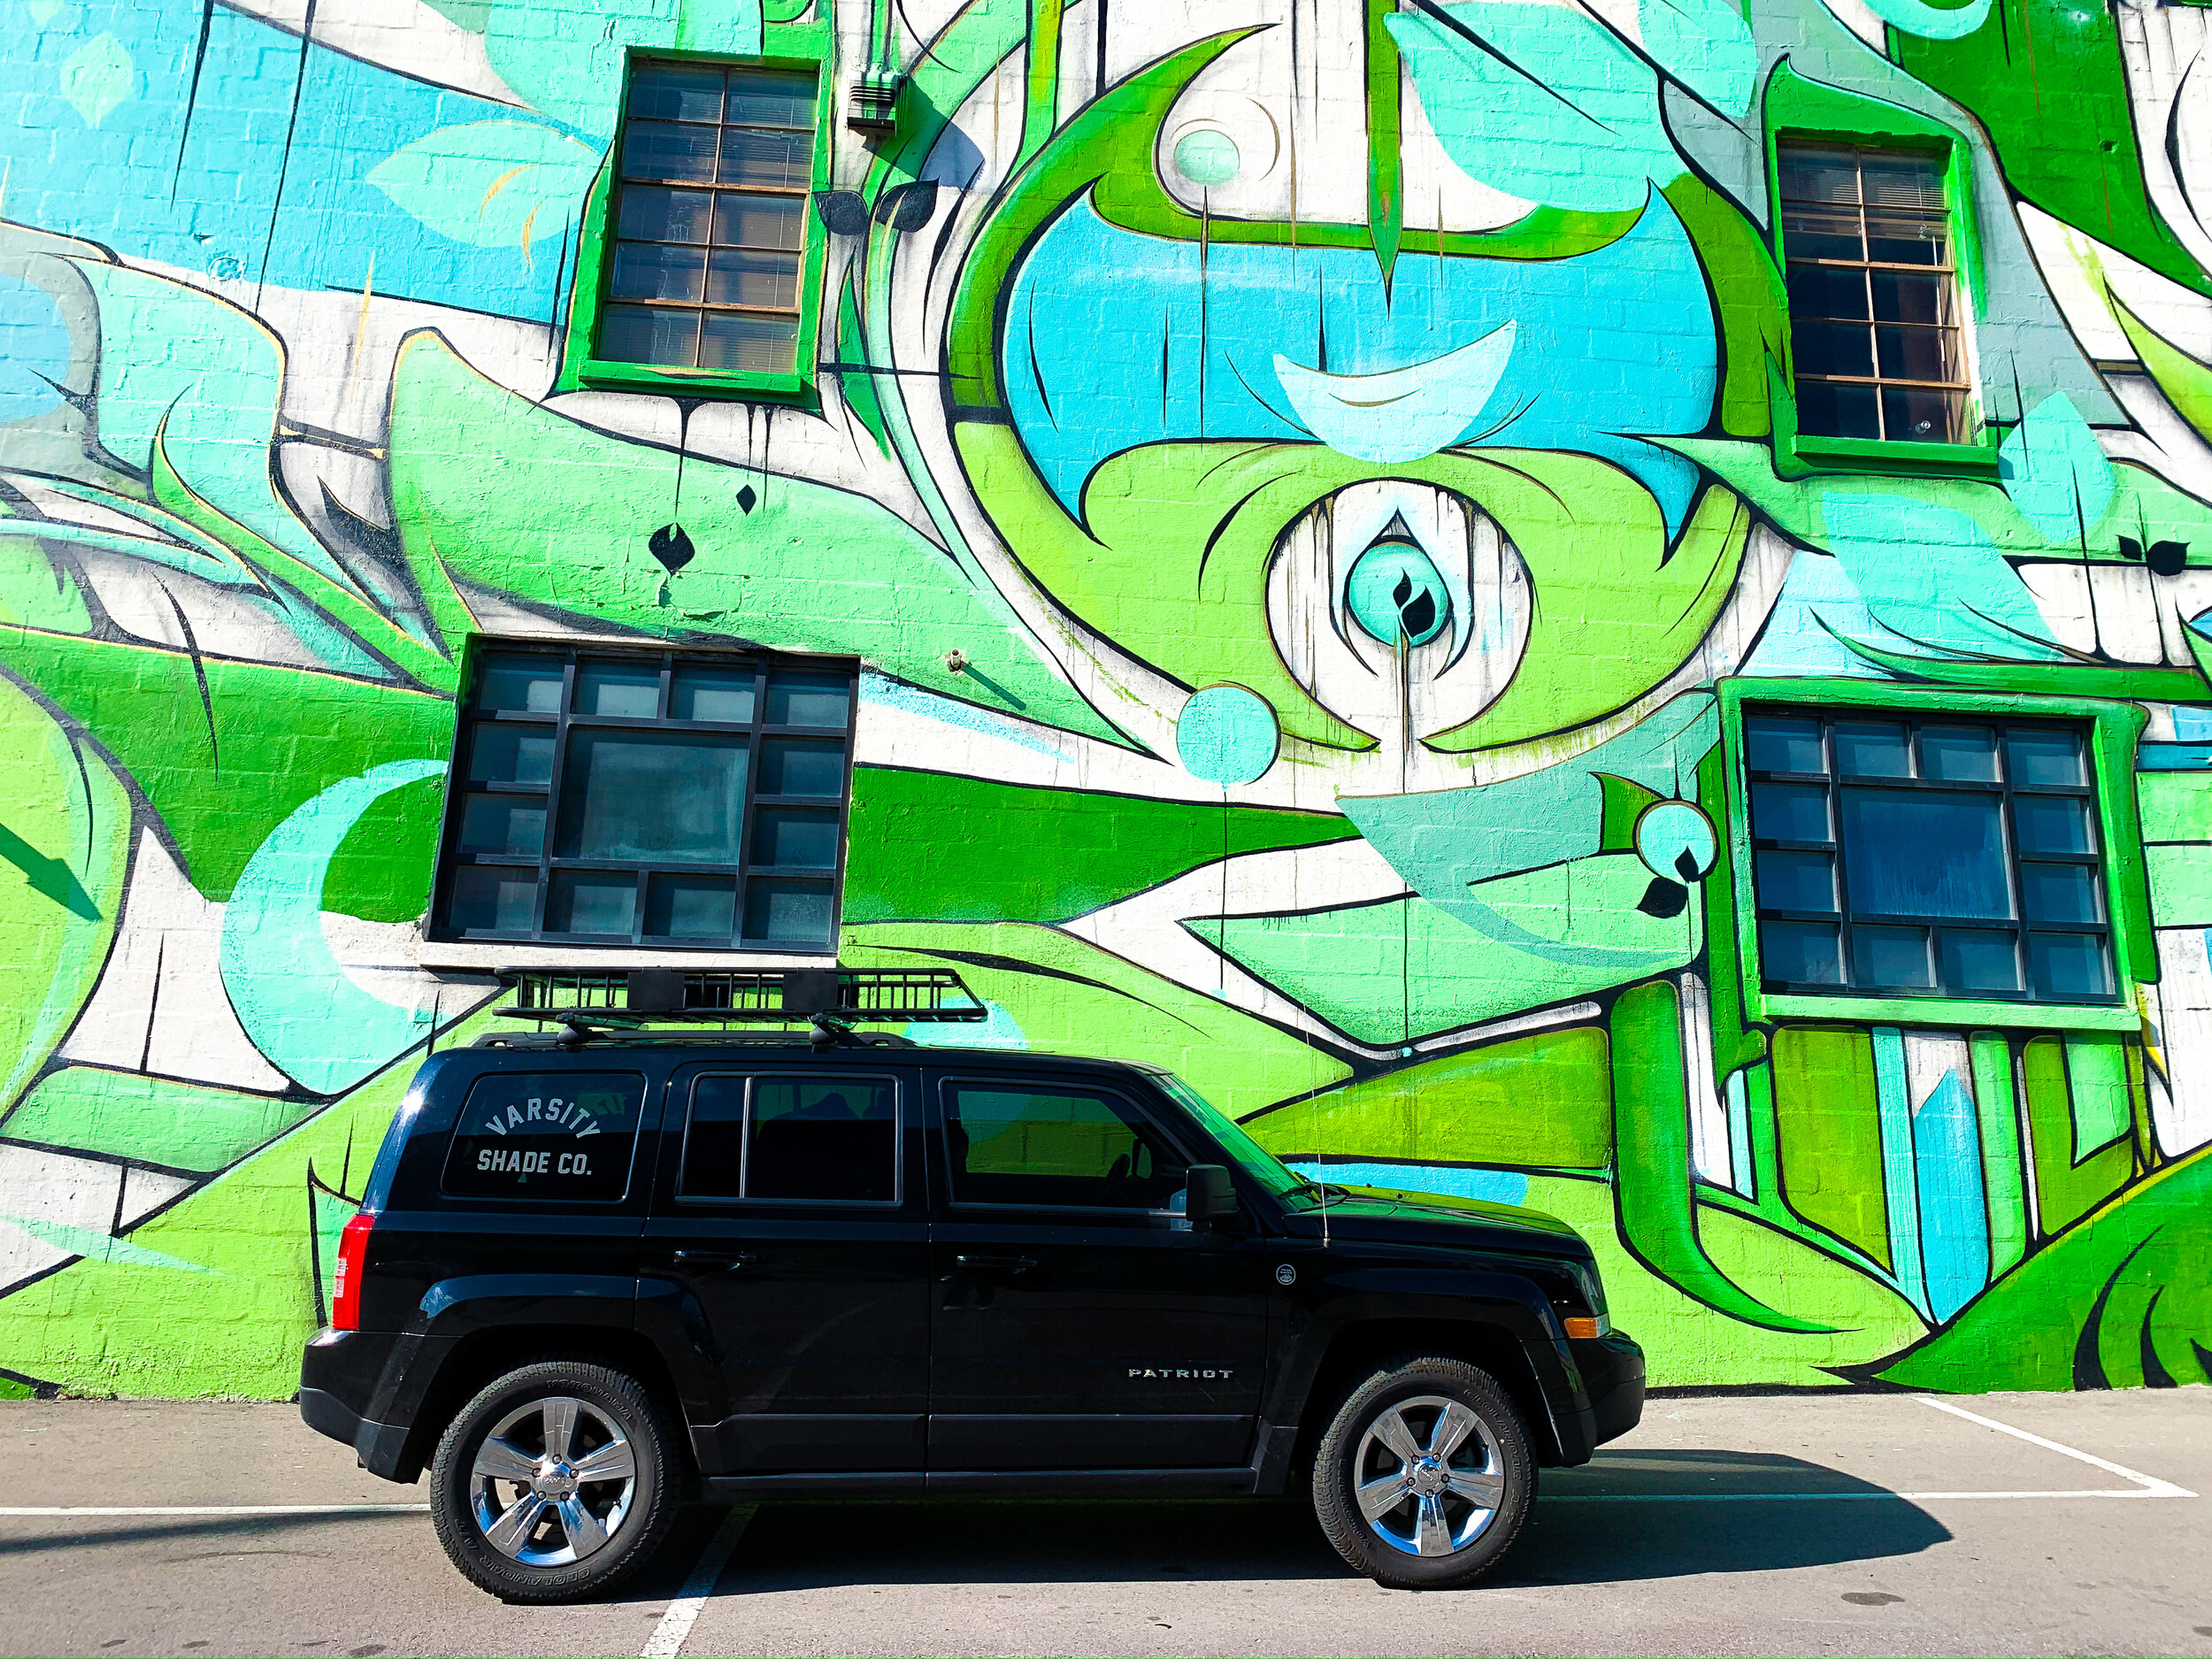 Grateful for this #AdventureMobile that takes us to such cool places!